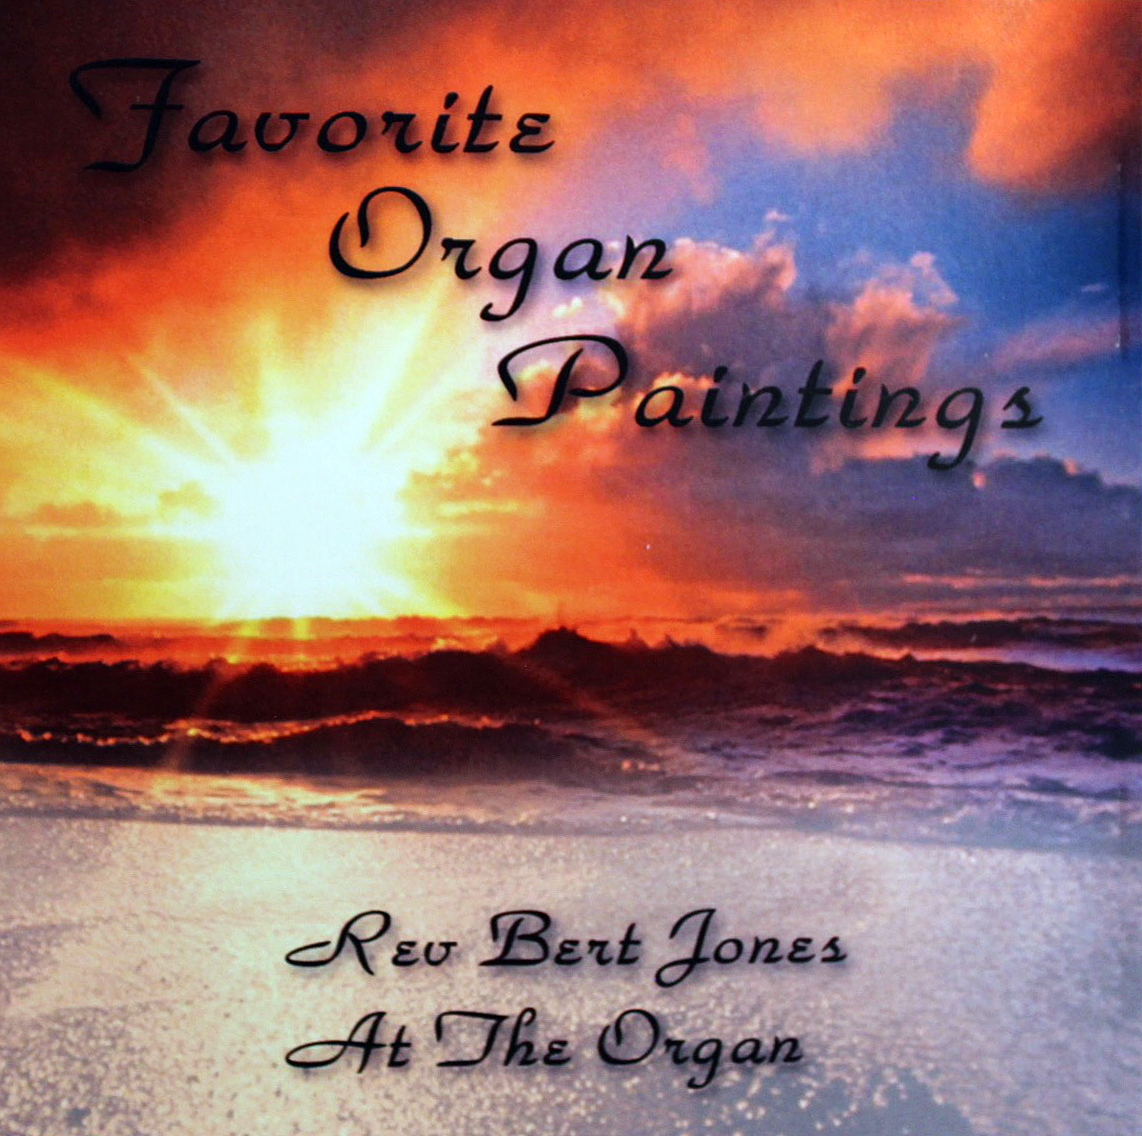 JUST RELEASED - Favorite Organ Paintings CD